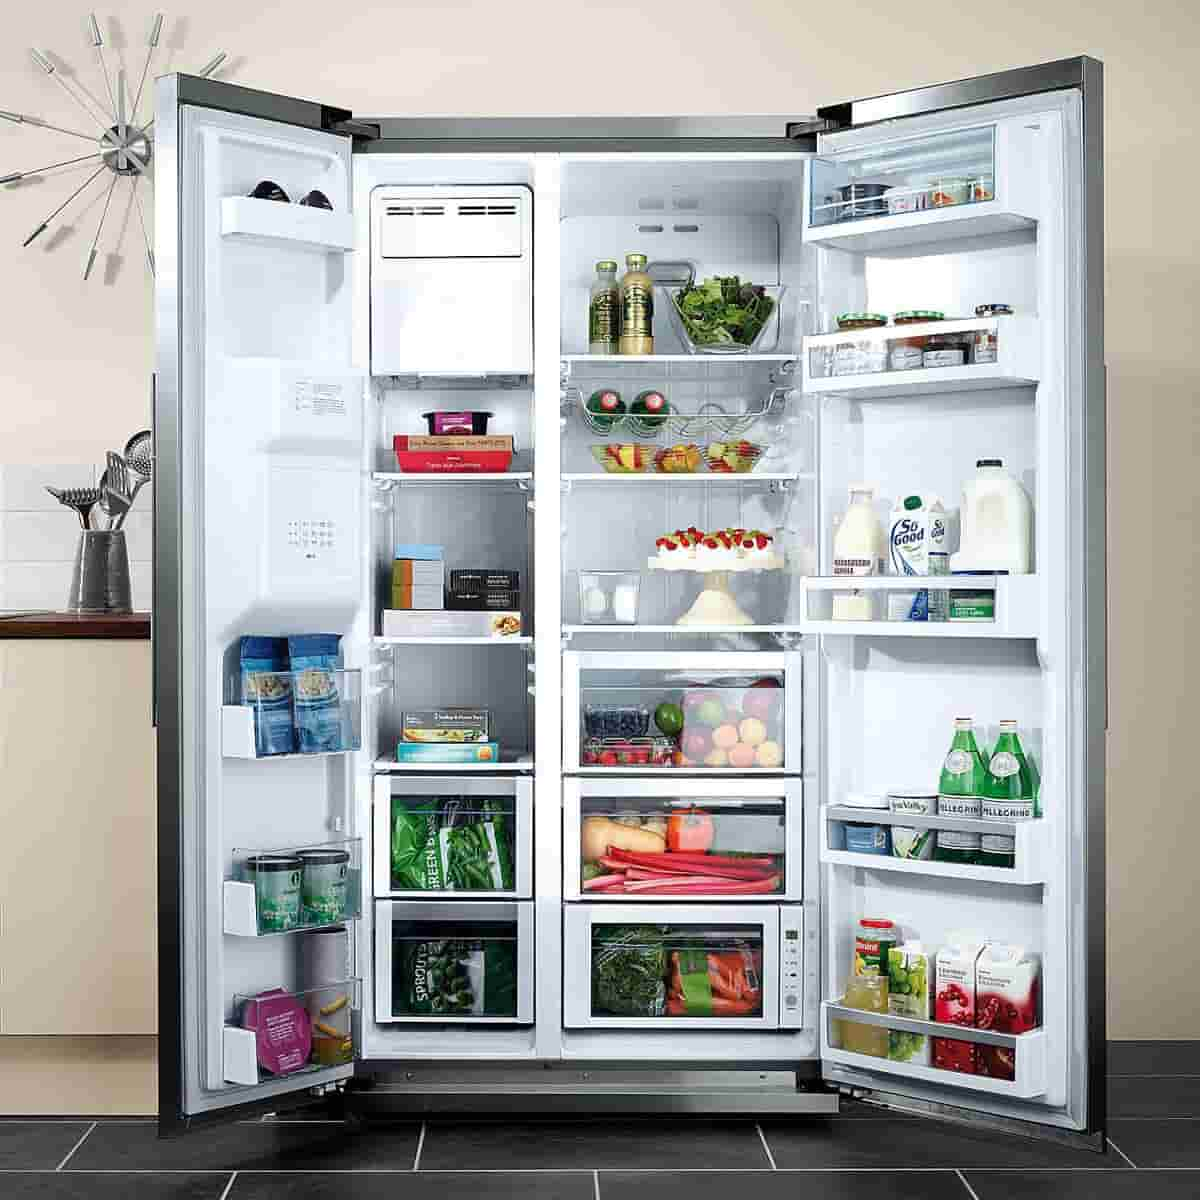 Easy Ways To Your Haier Refrigerator More Eco Friendly